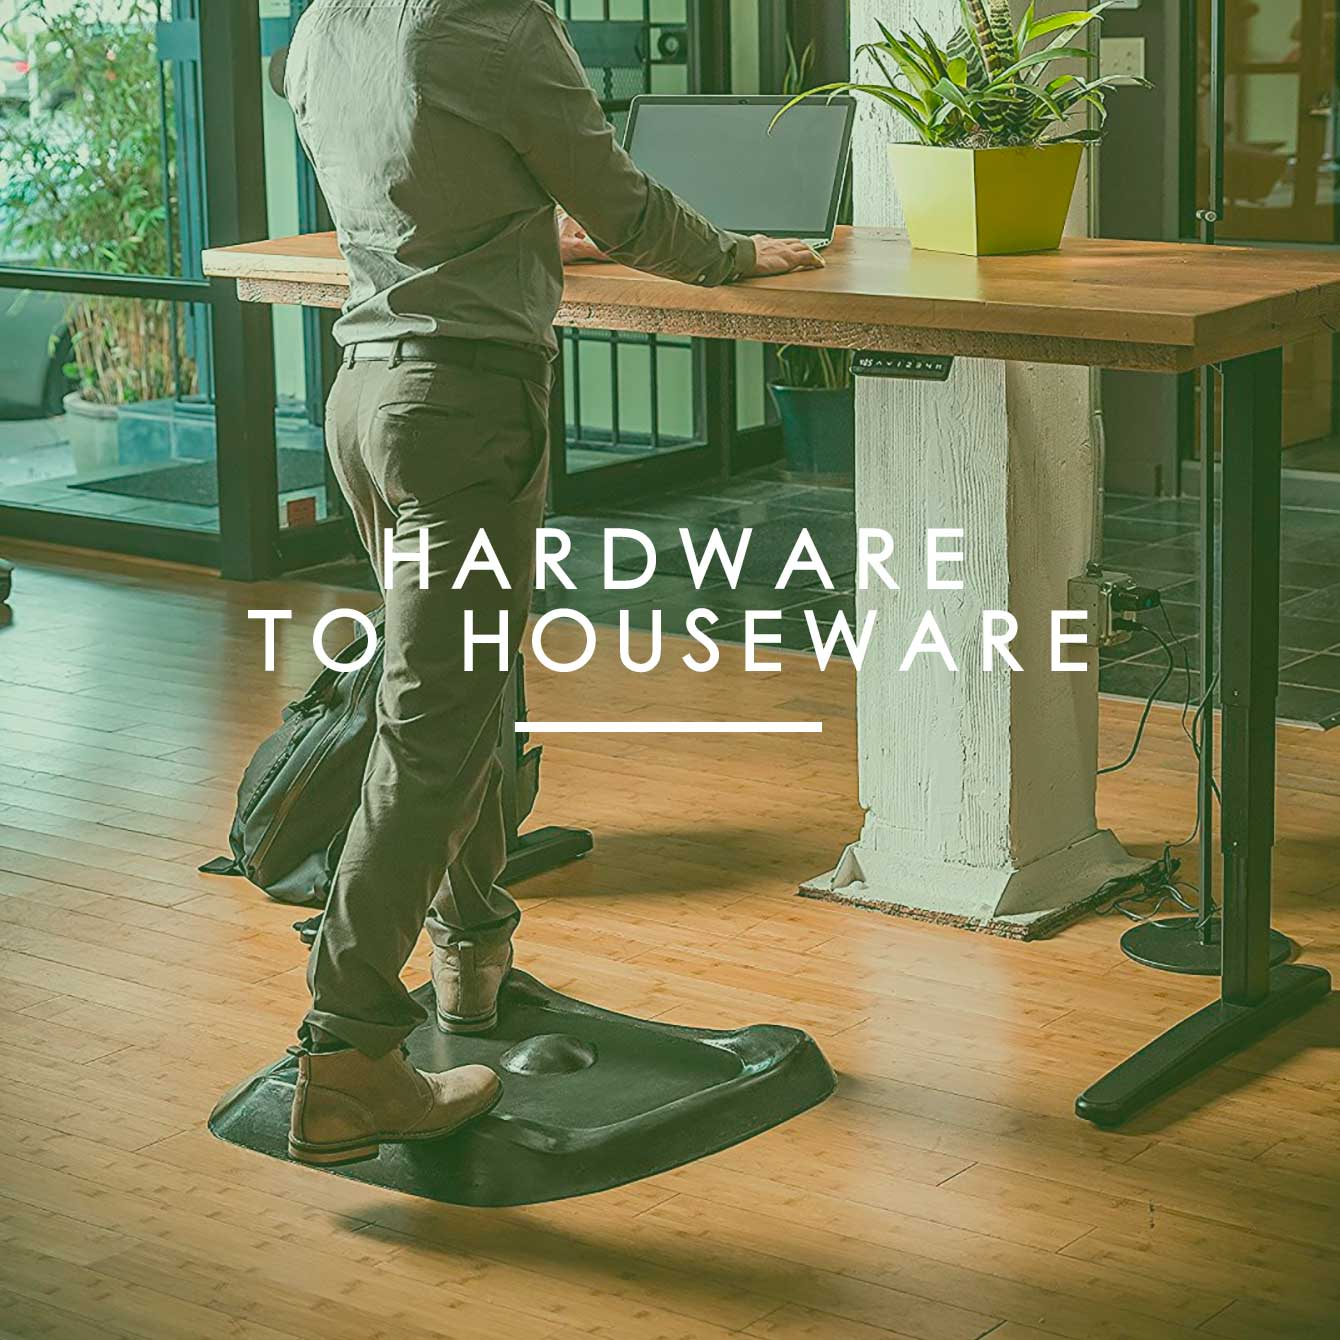 Amazon Exclusives: Hardware to Houseware